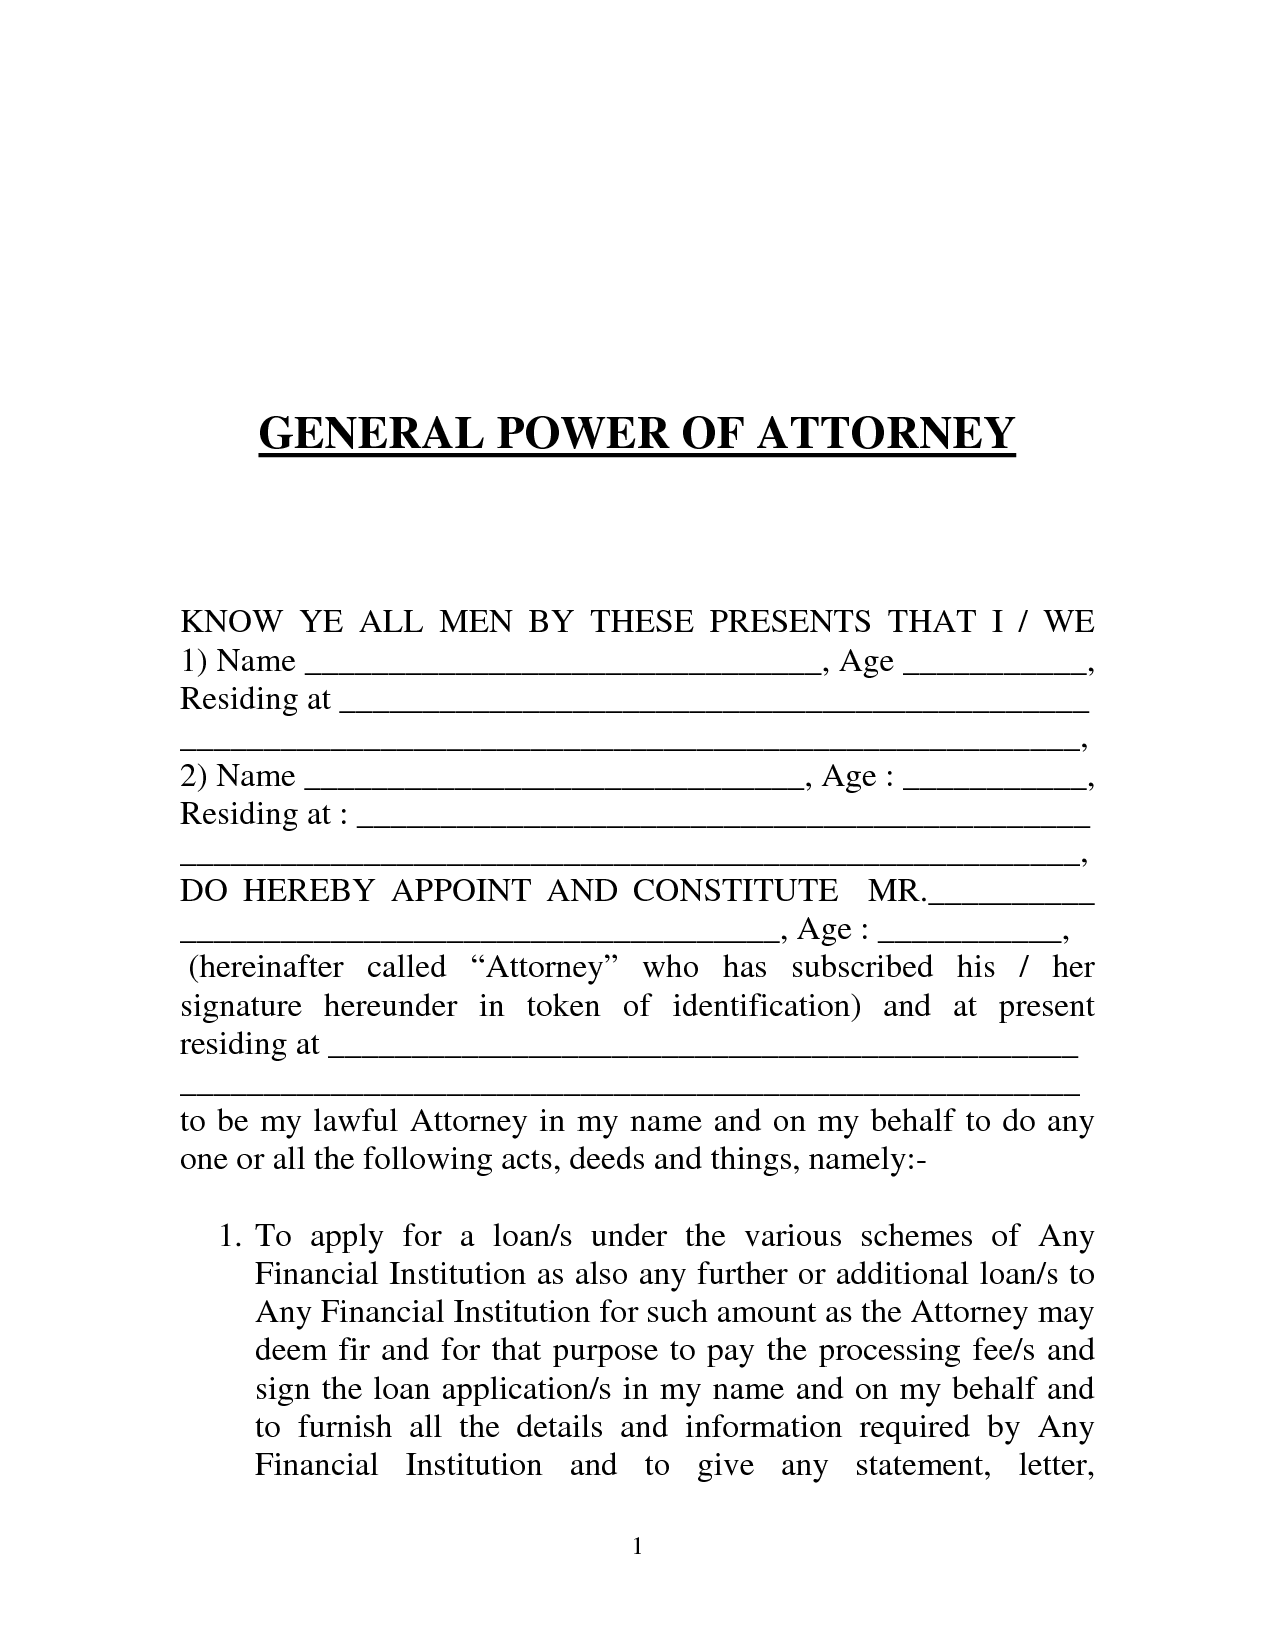 printable general power of attorney form  power of atttorney template | General Power Of Attorney Form ...